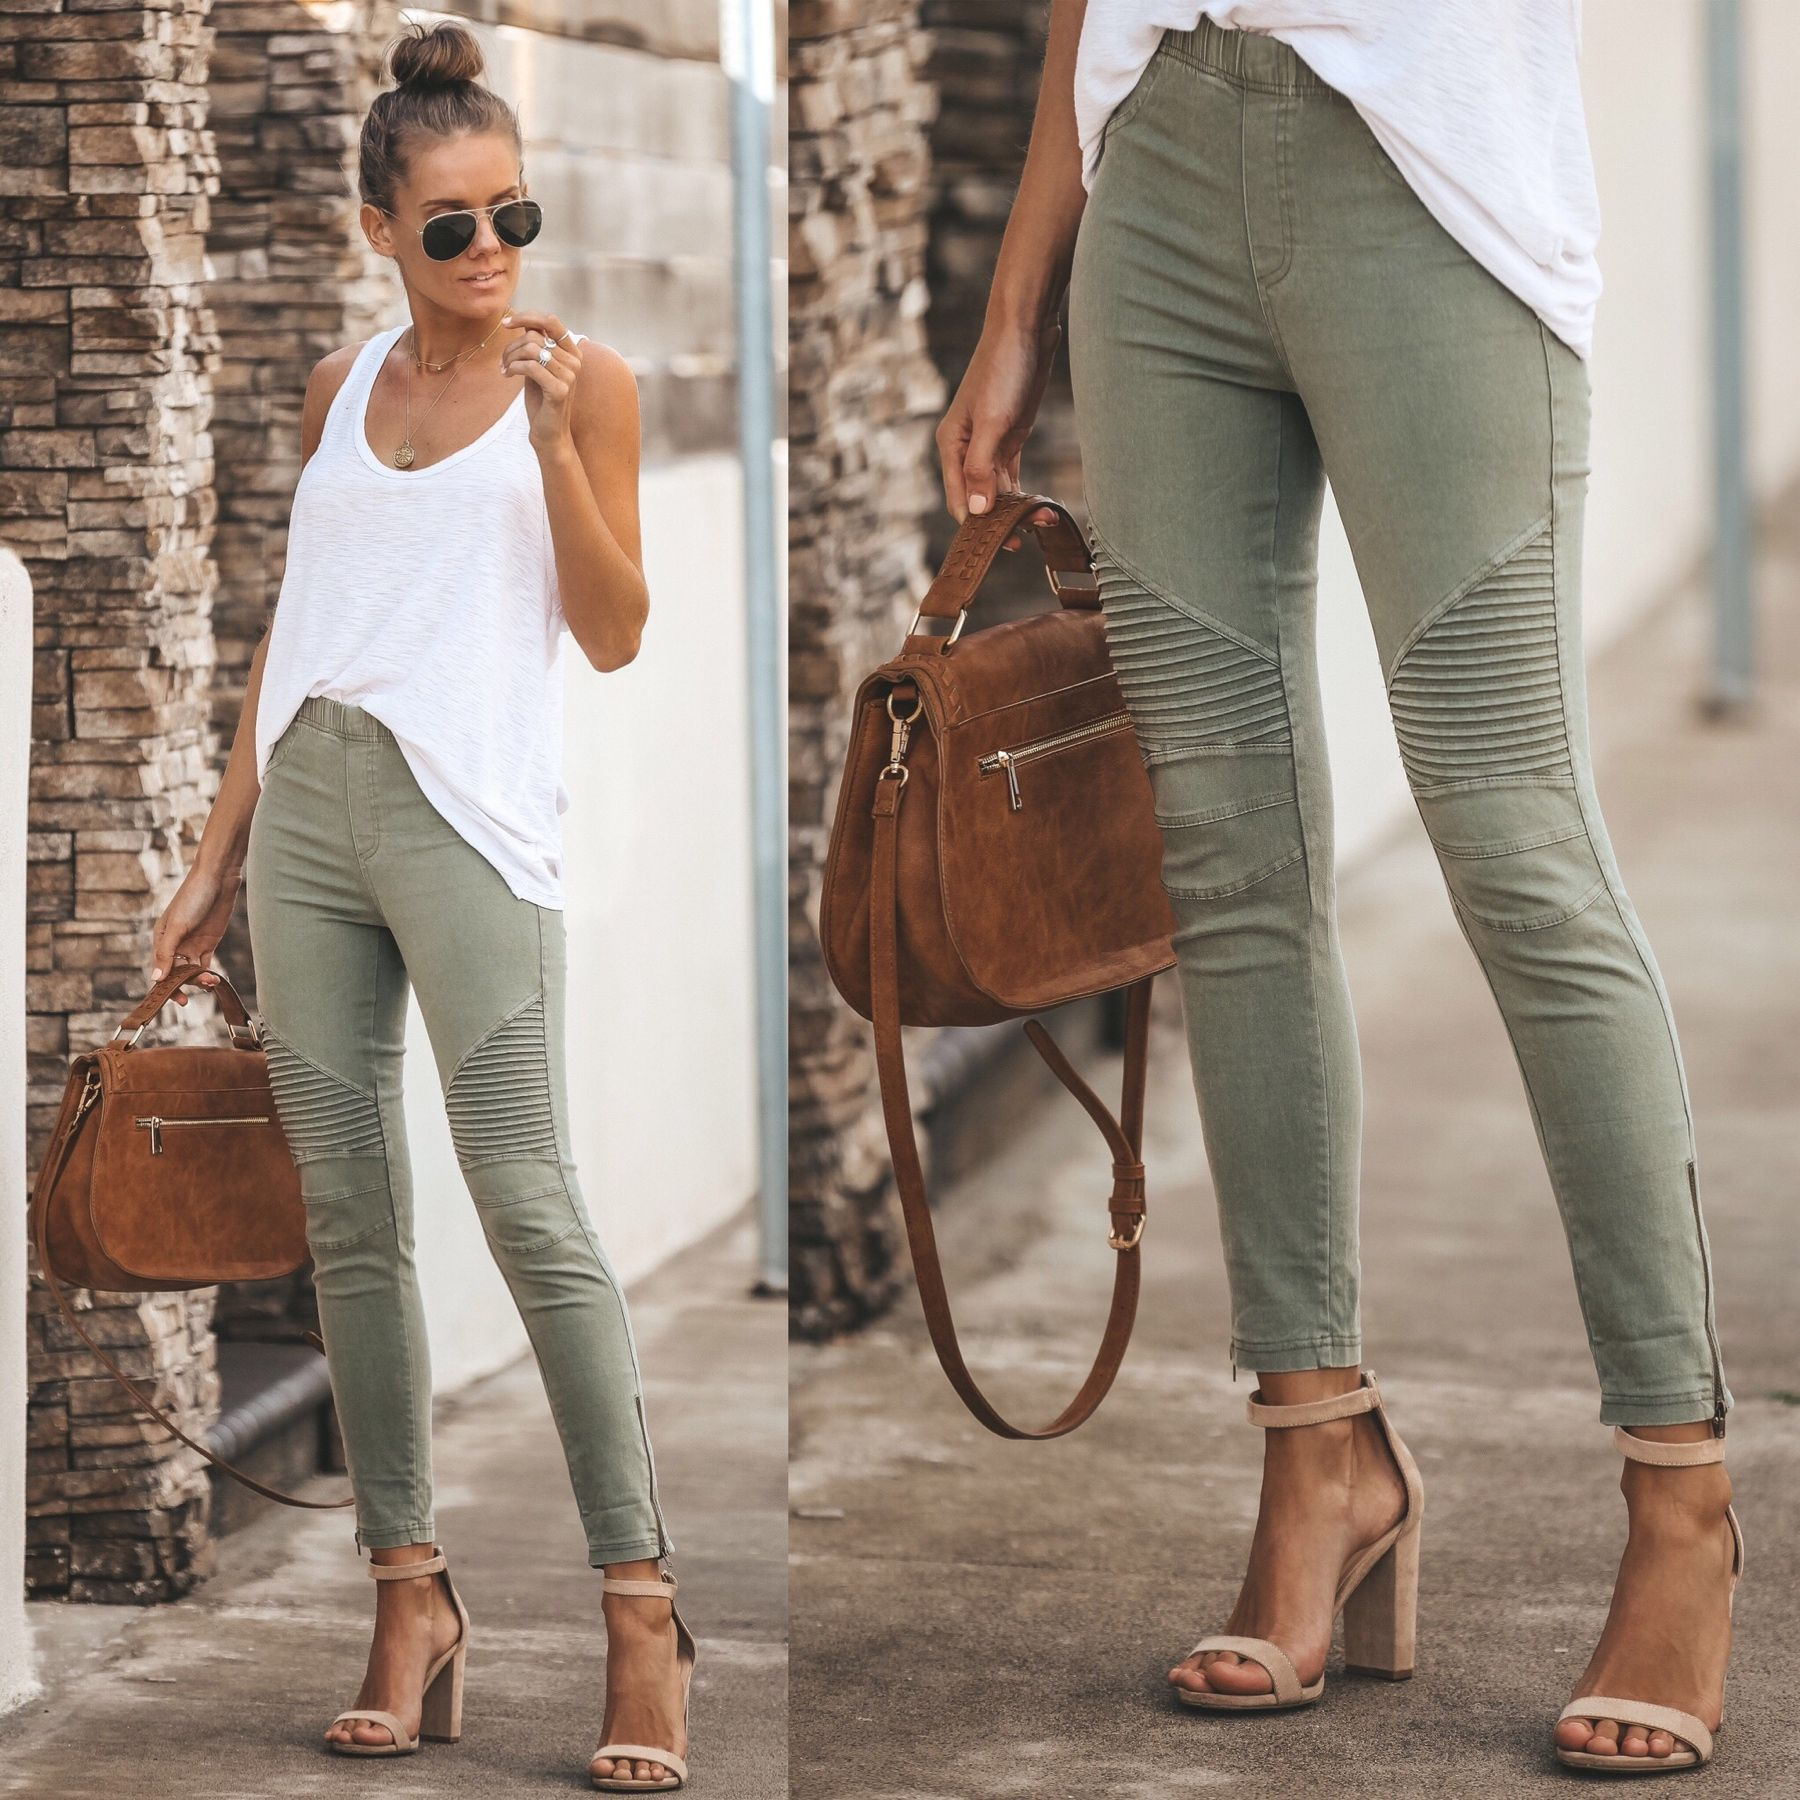 9856547e49283c VICI // BESTSELLER // MUST HAVE Piper Jegging $38 – Olive Also available in  Dark Grey, Black and Off White Click to shop our website or follow us at ...